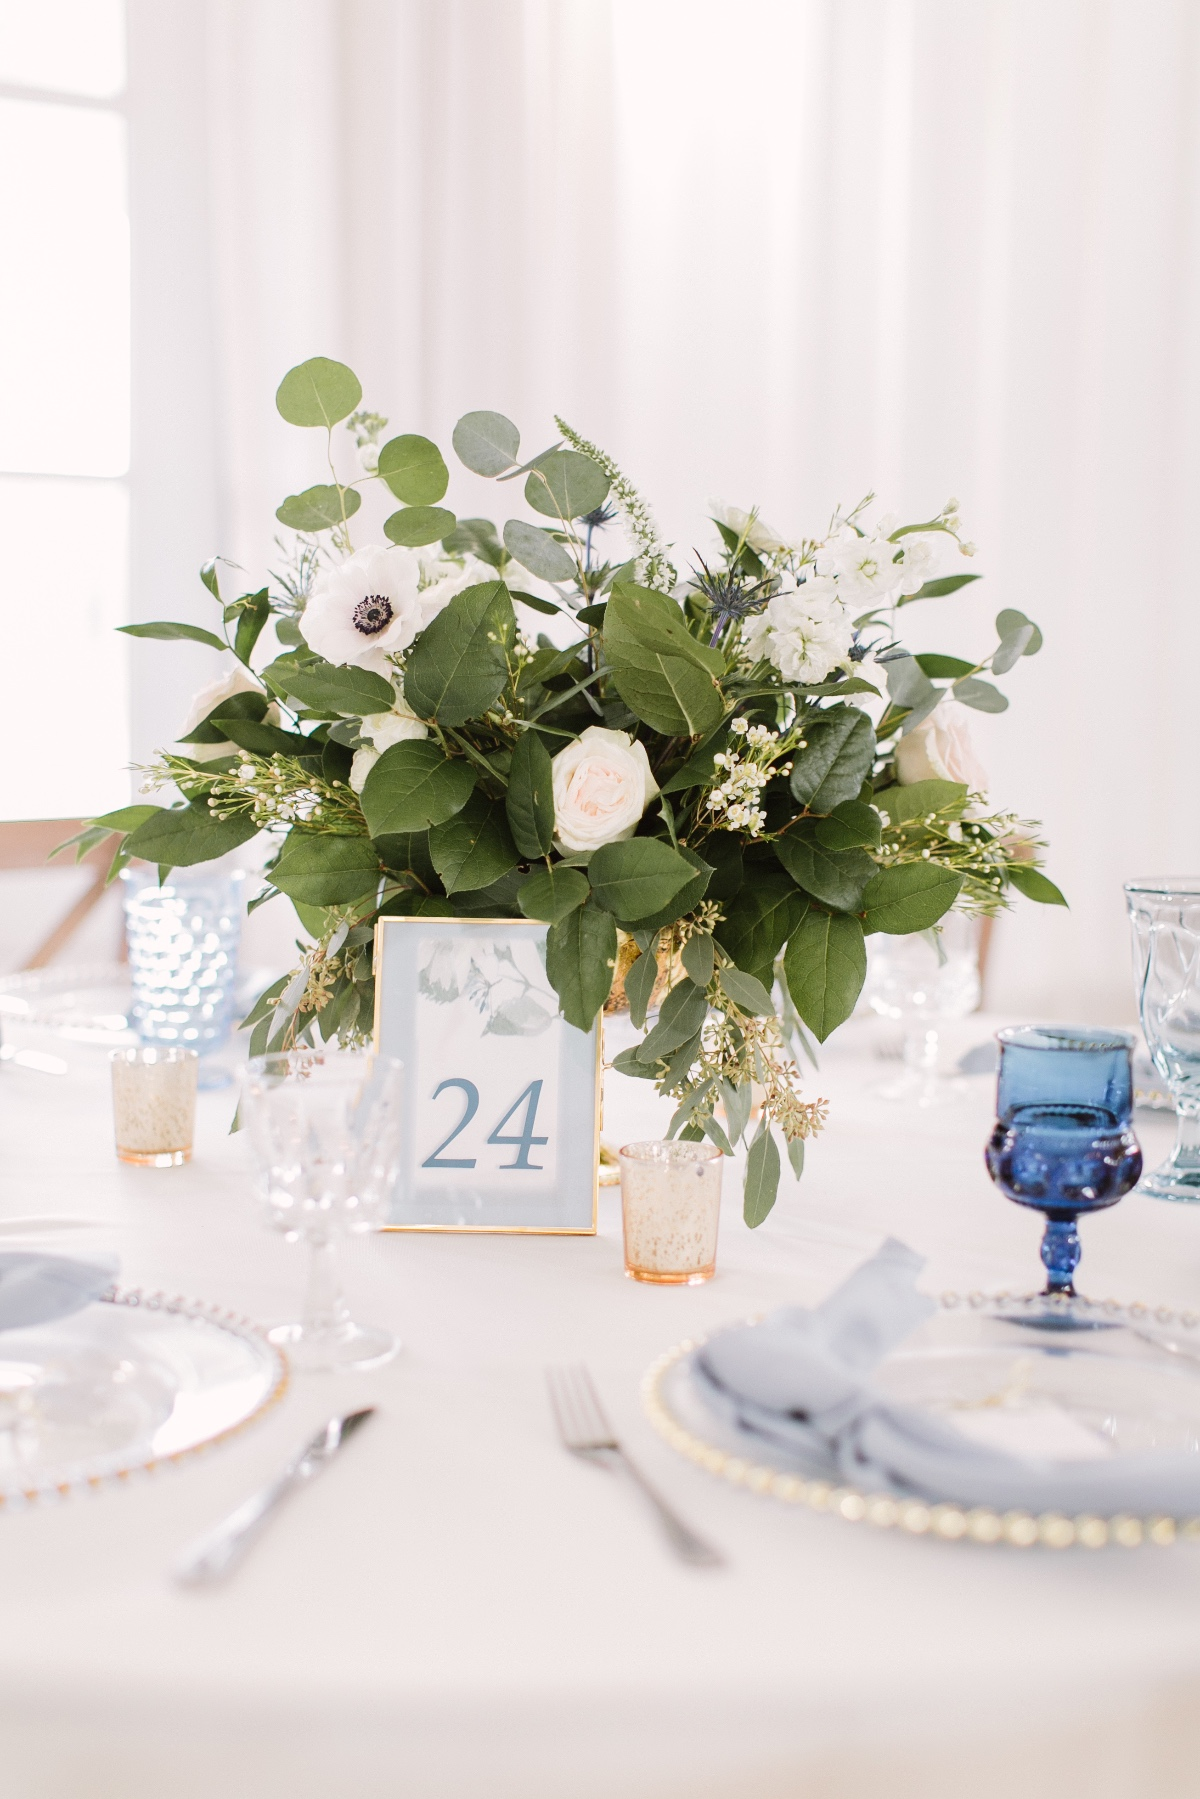 white and blue table decor with green and white floral arrangement